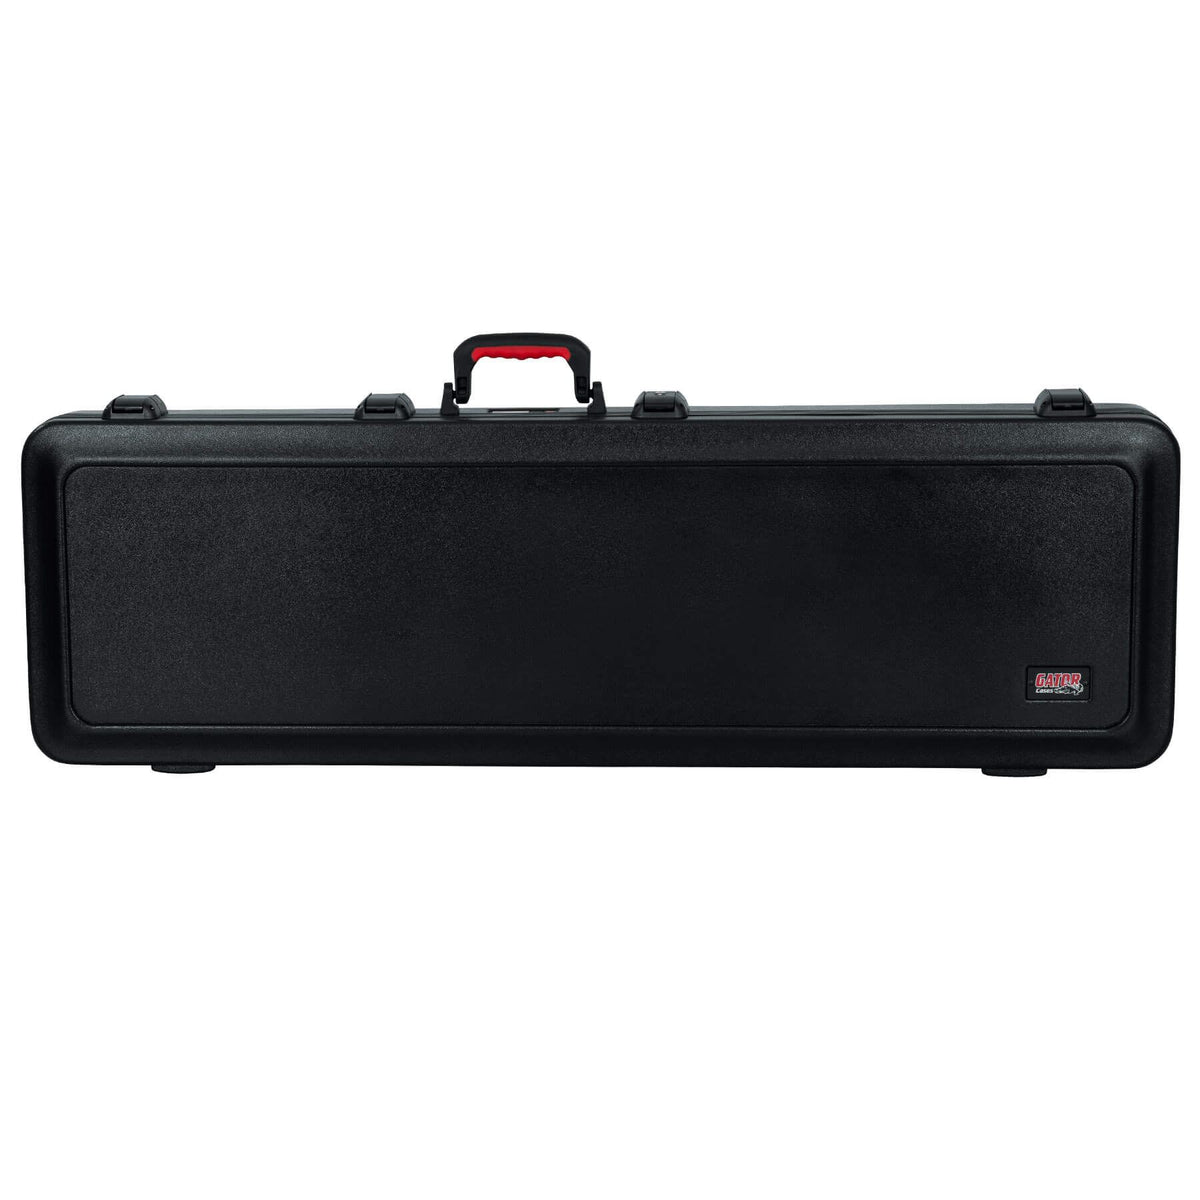 Gator ATA Bass Guitar Case fits Warwick Corvette Basic 4-String Active or Passive